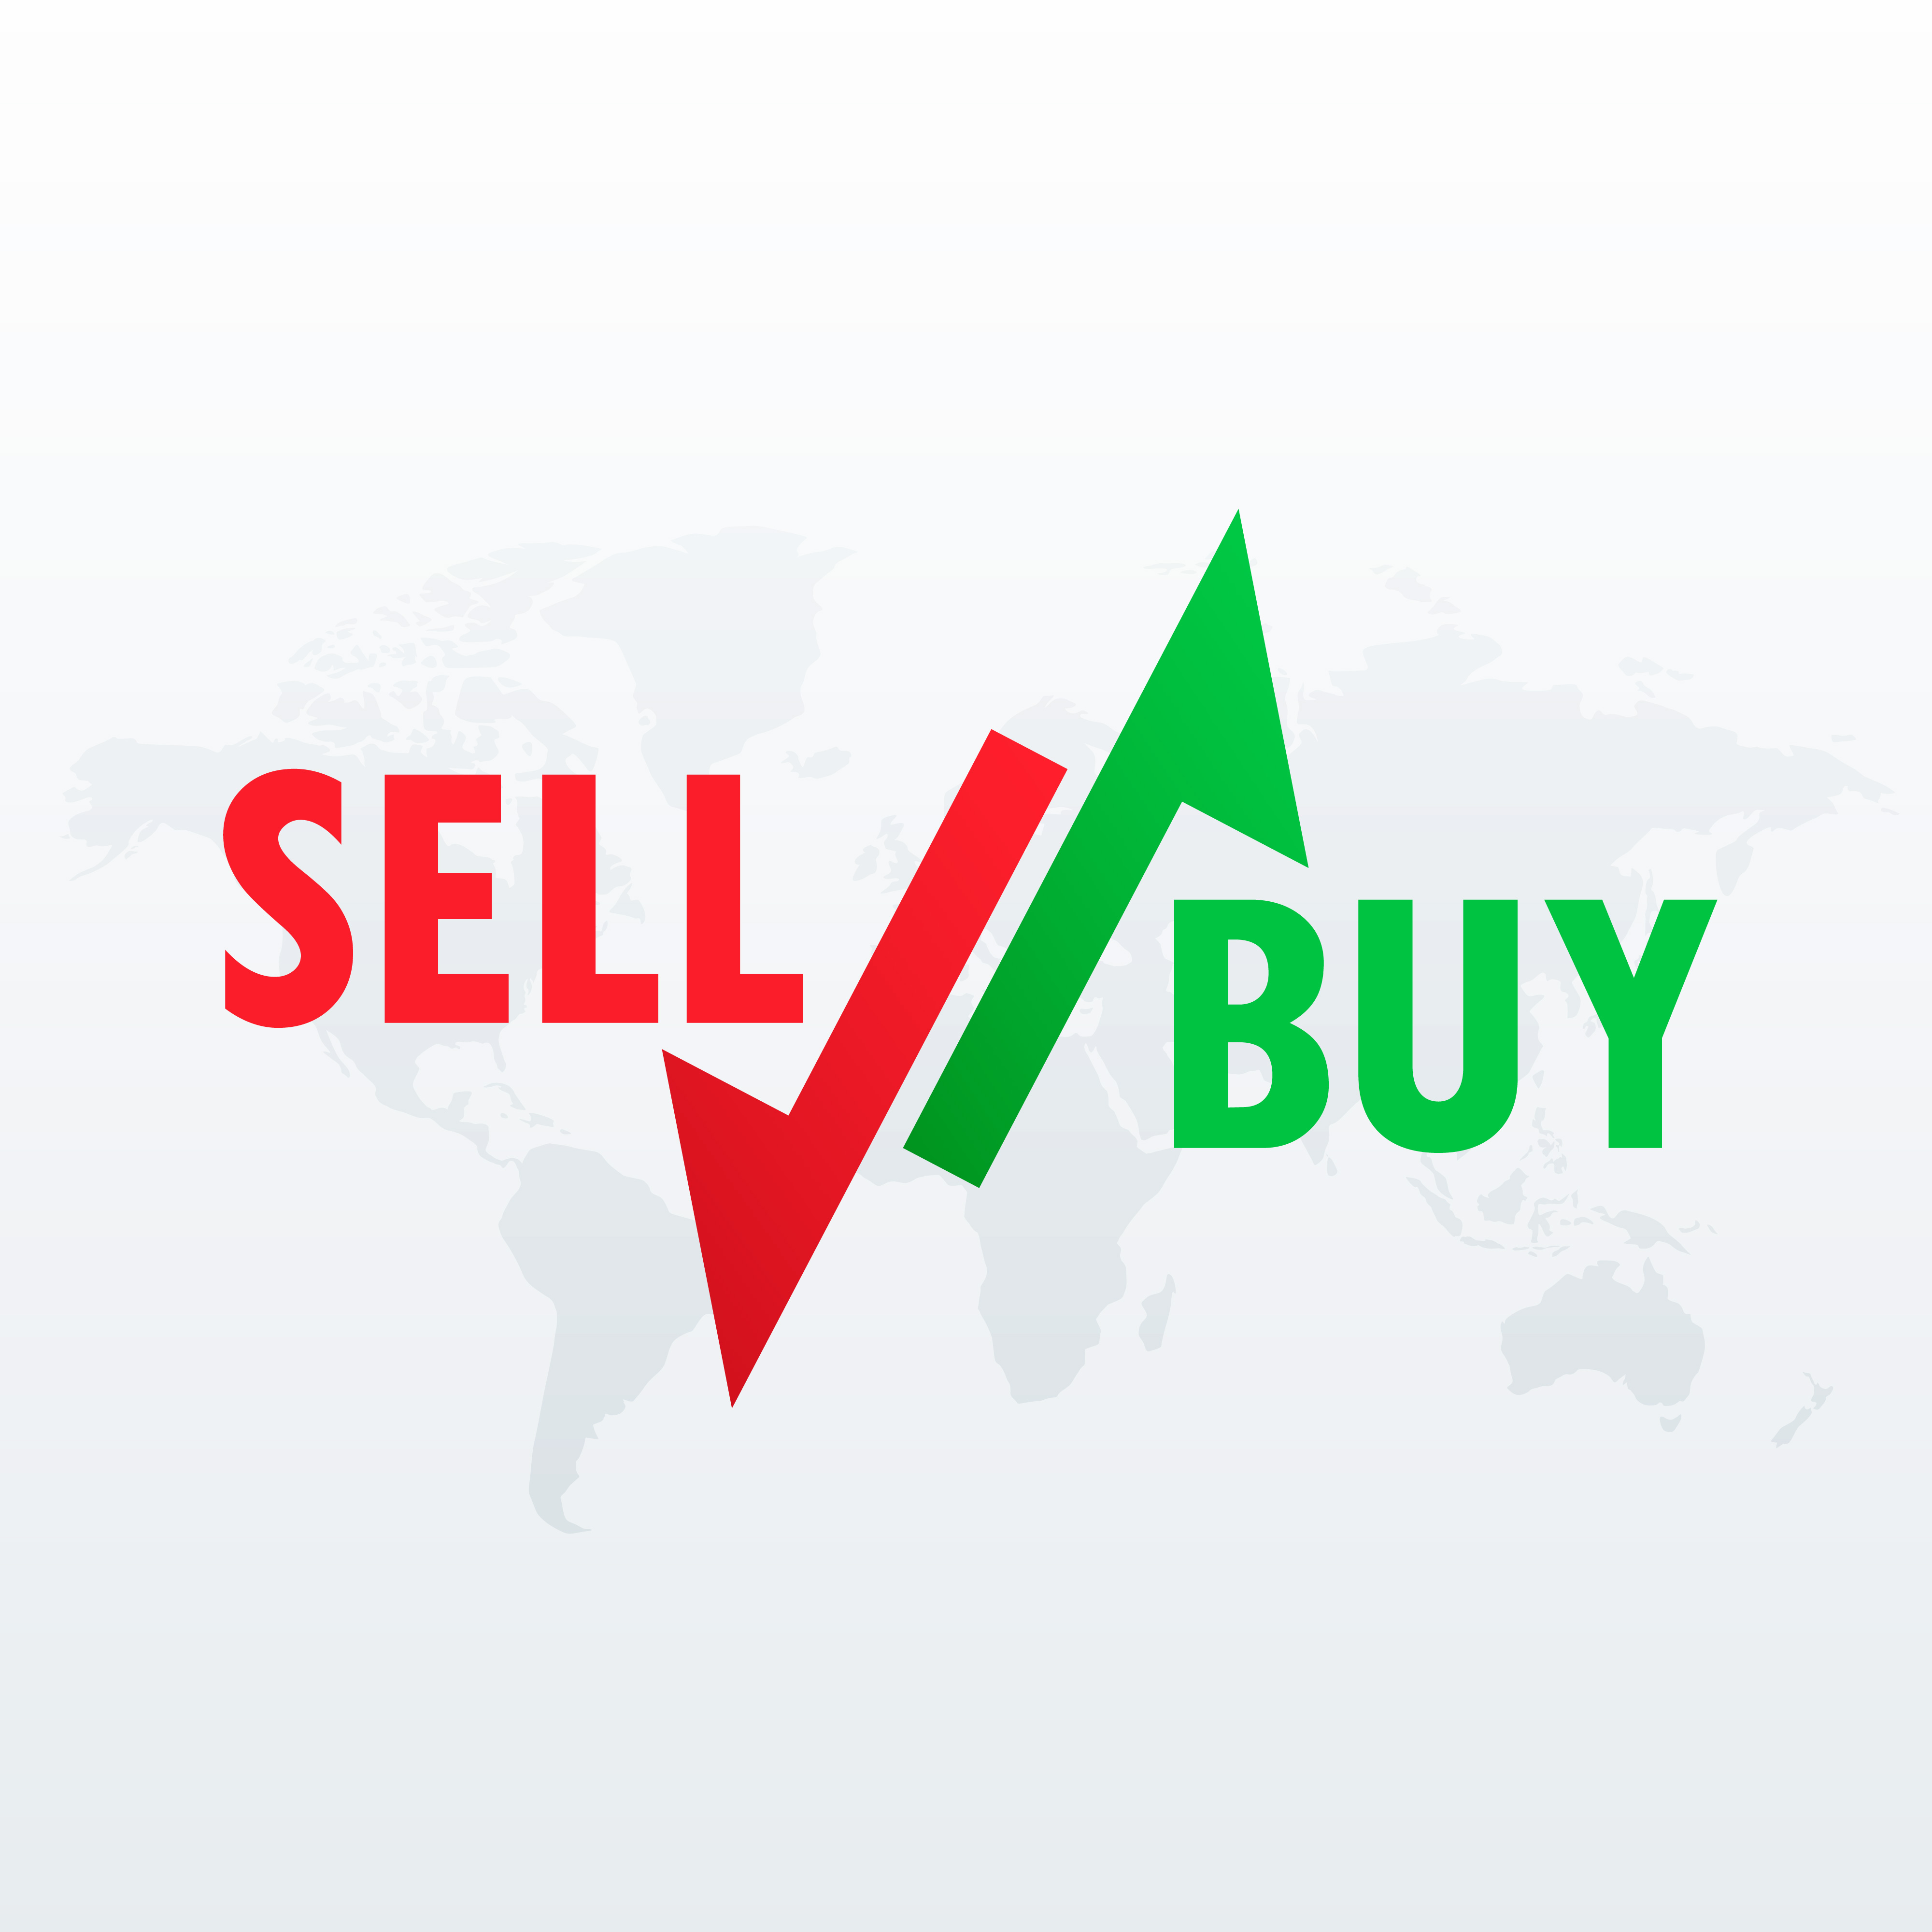 Buy: Stock Arrow Free Vector Art